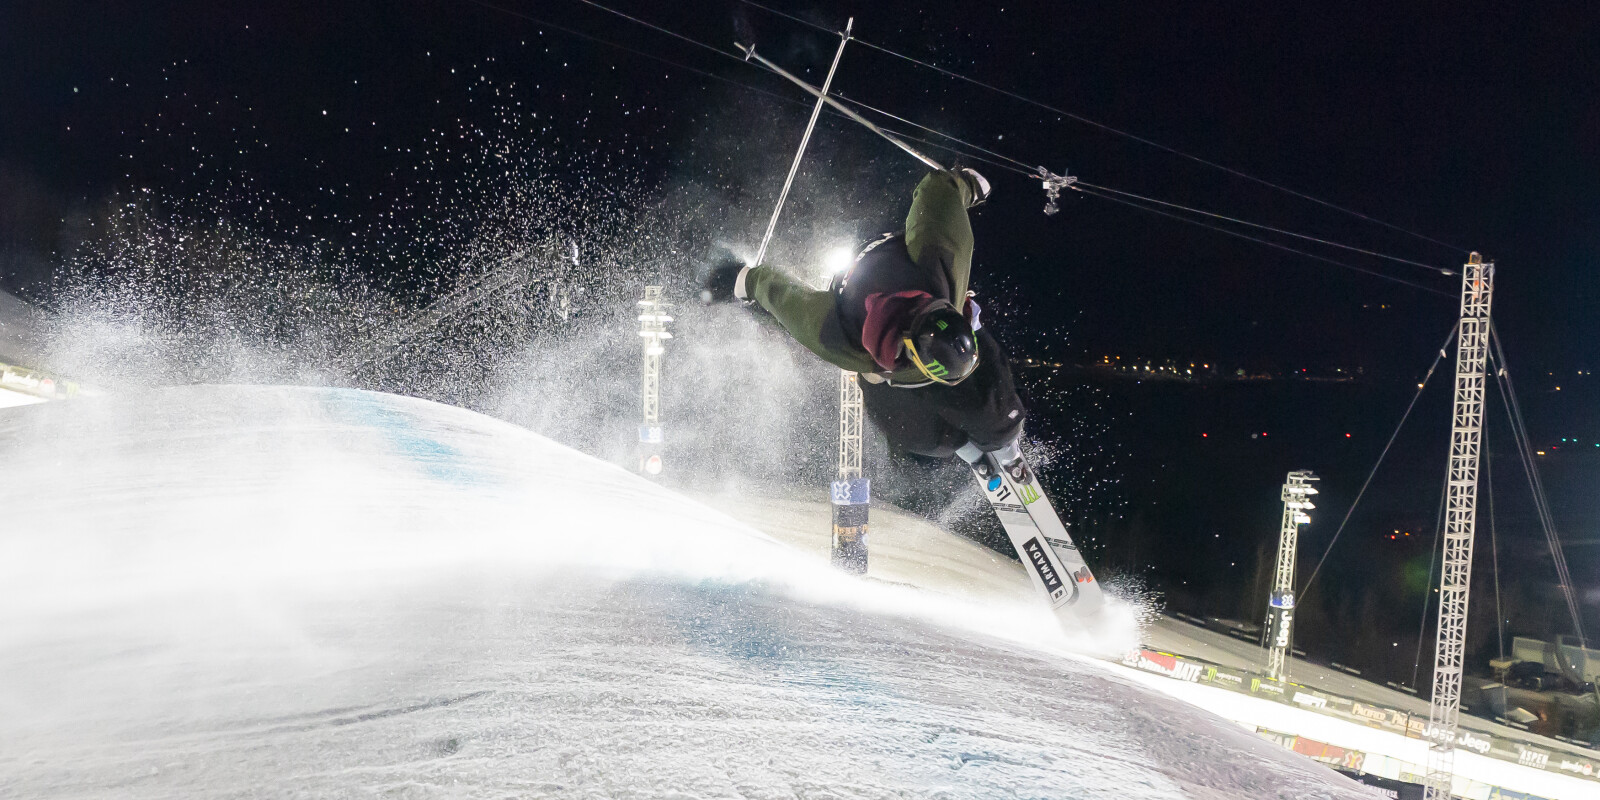 Ski images from day 3 X Games, Aspen Colorado